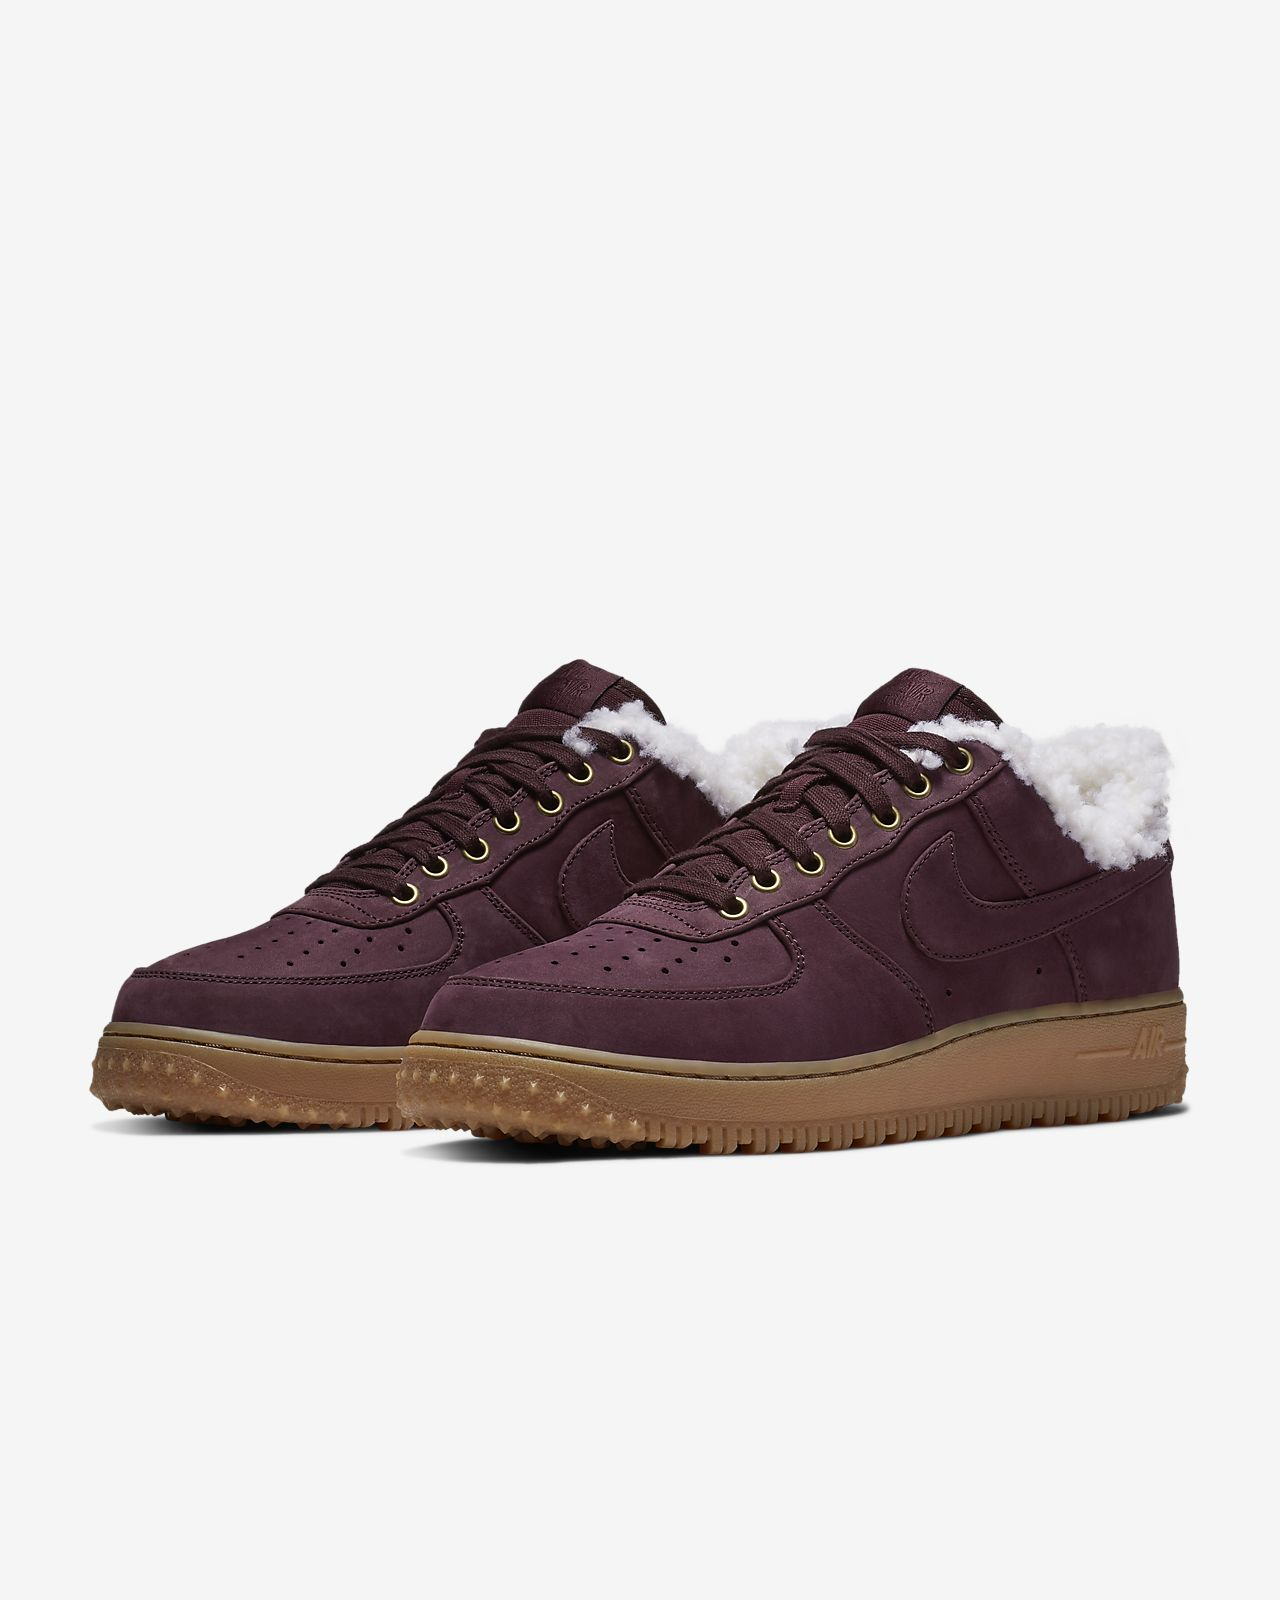 Nike Air Force 1 Premium Winter Men's Shoe